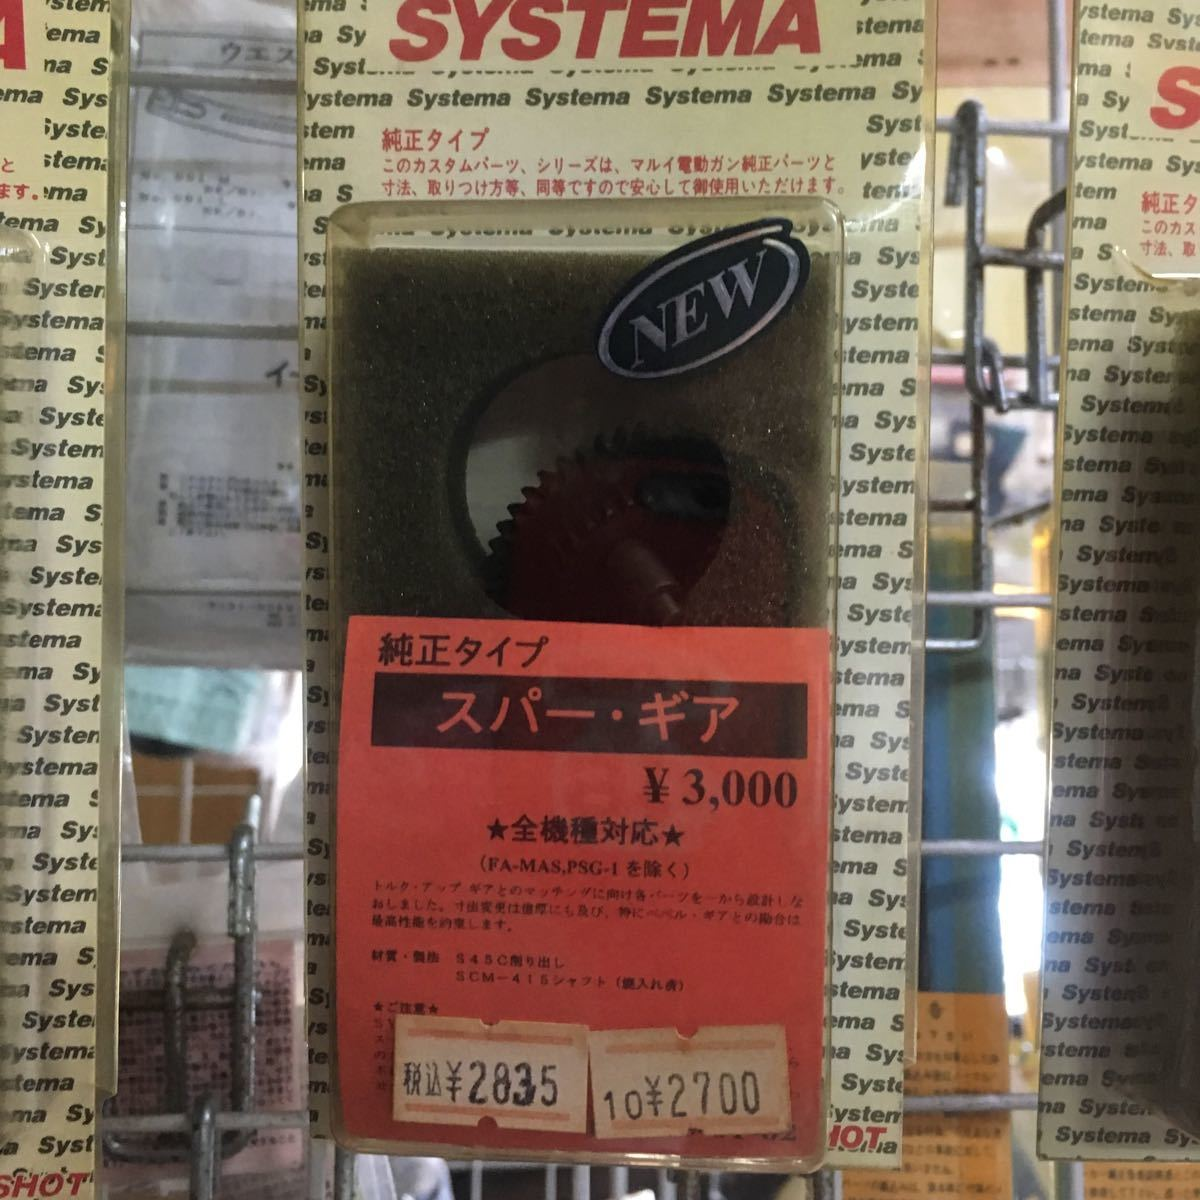 round electric gun parts si stereo ma: Real Yahoo auction